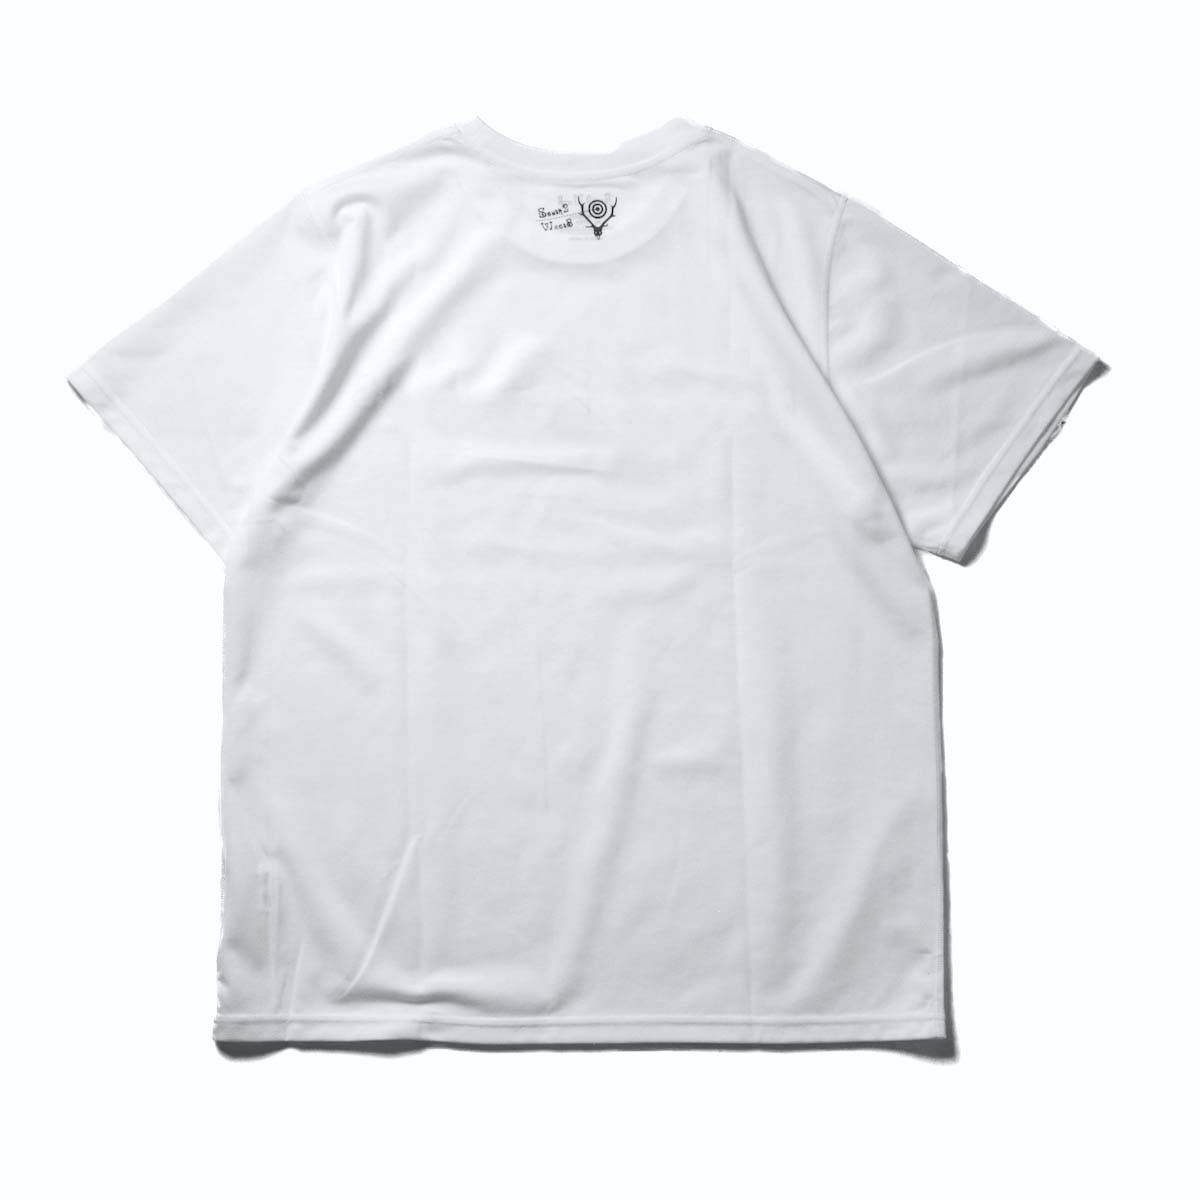 South2 West8 / S/S Crew Neck Tee -Rainbow Sleeves (White)背面